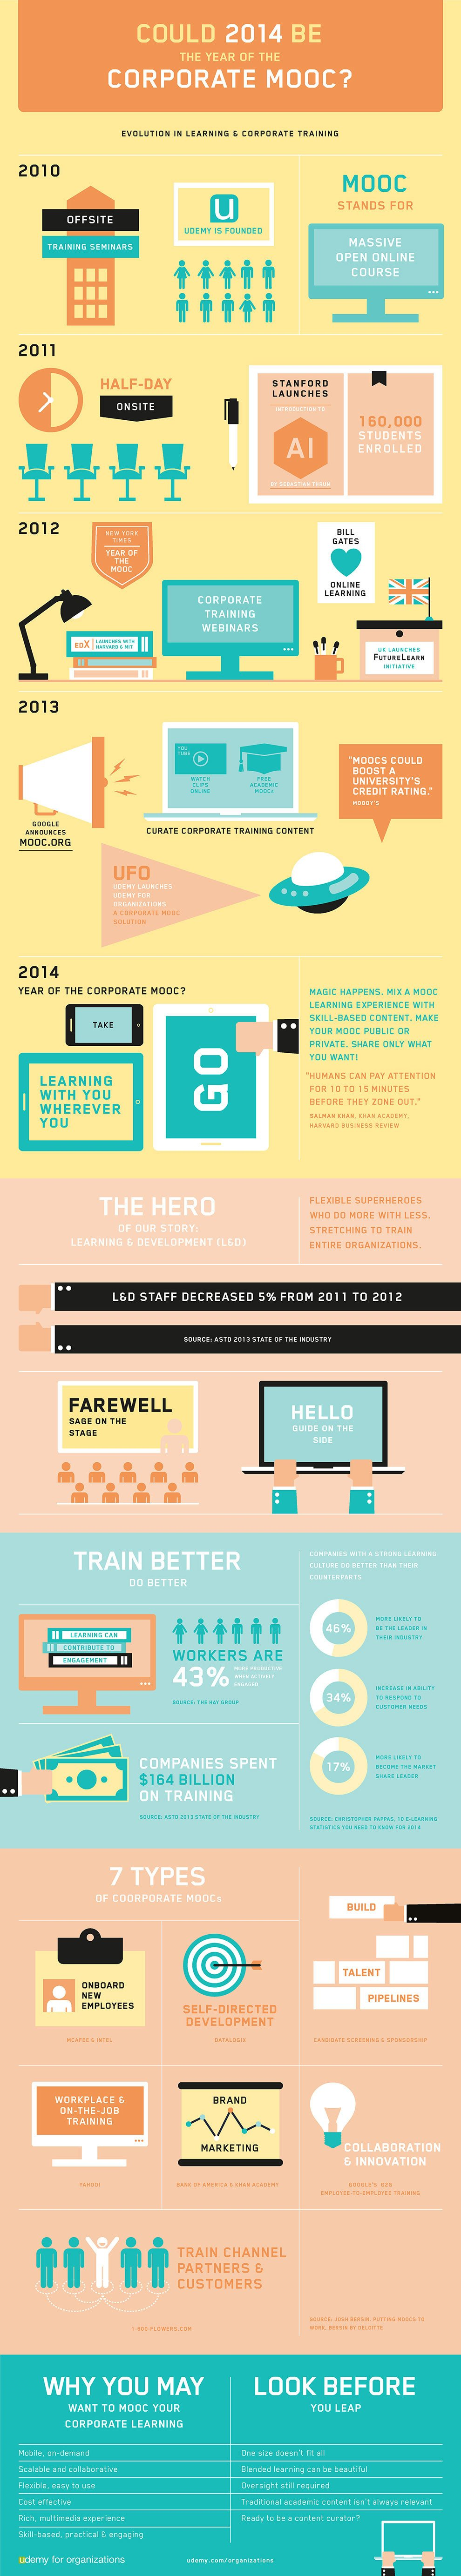 Is-2014-The-Year-of-the-Corporate-MOOC-Infographic